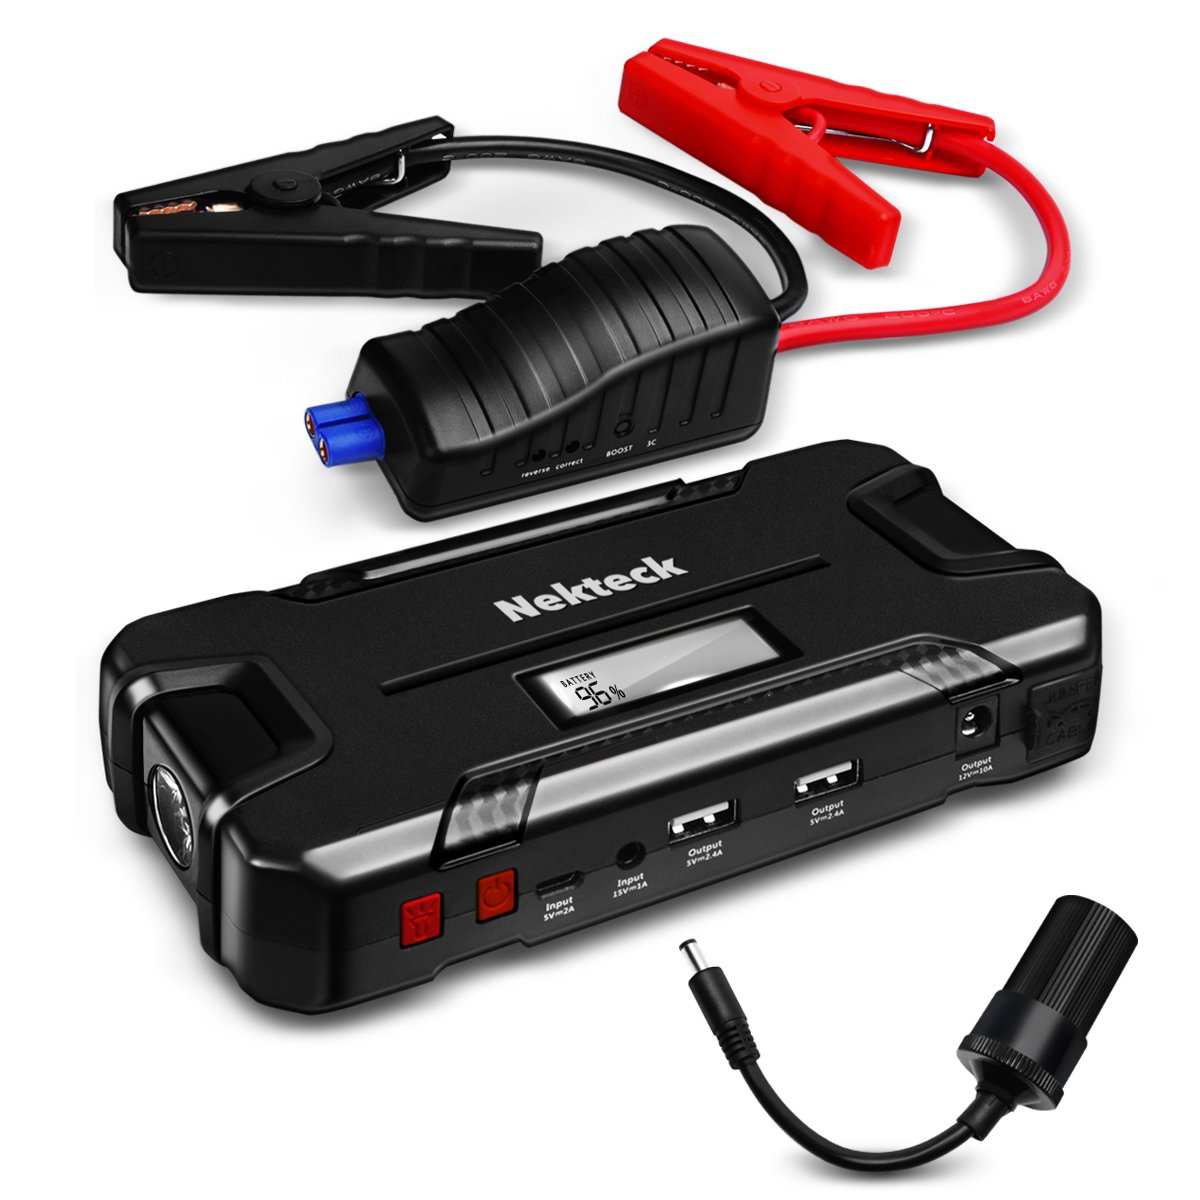 Nekteck Car Jump Starter Automotive Battery Booster